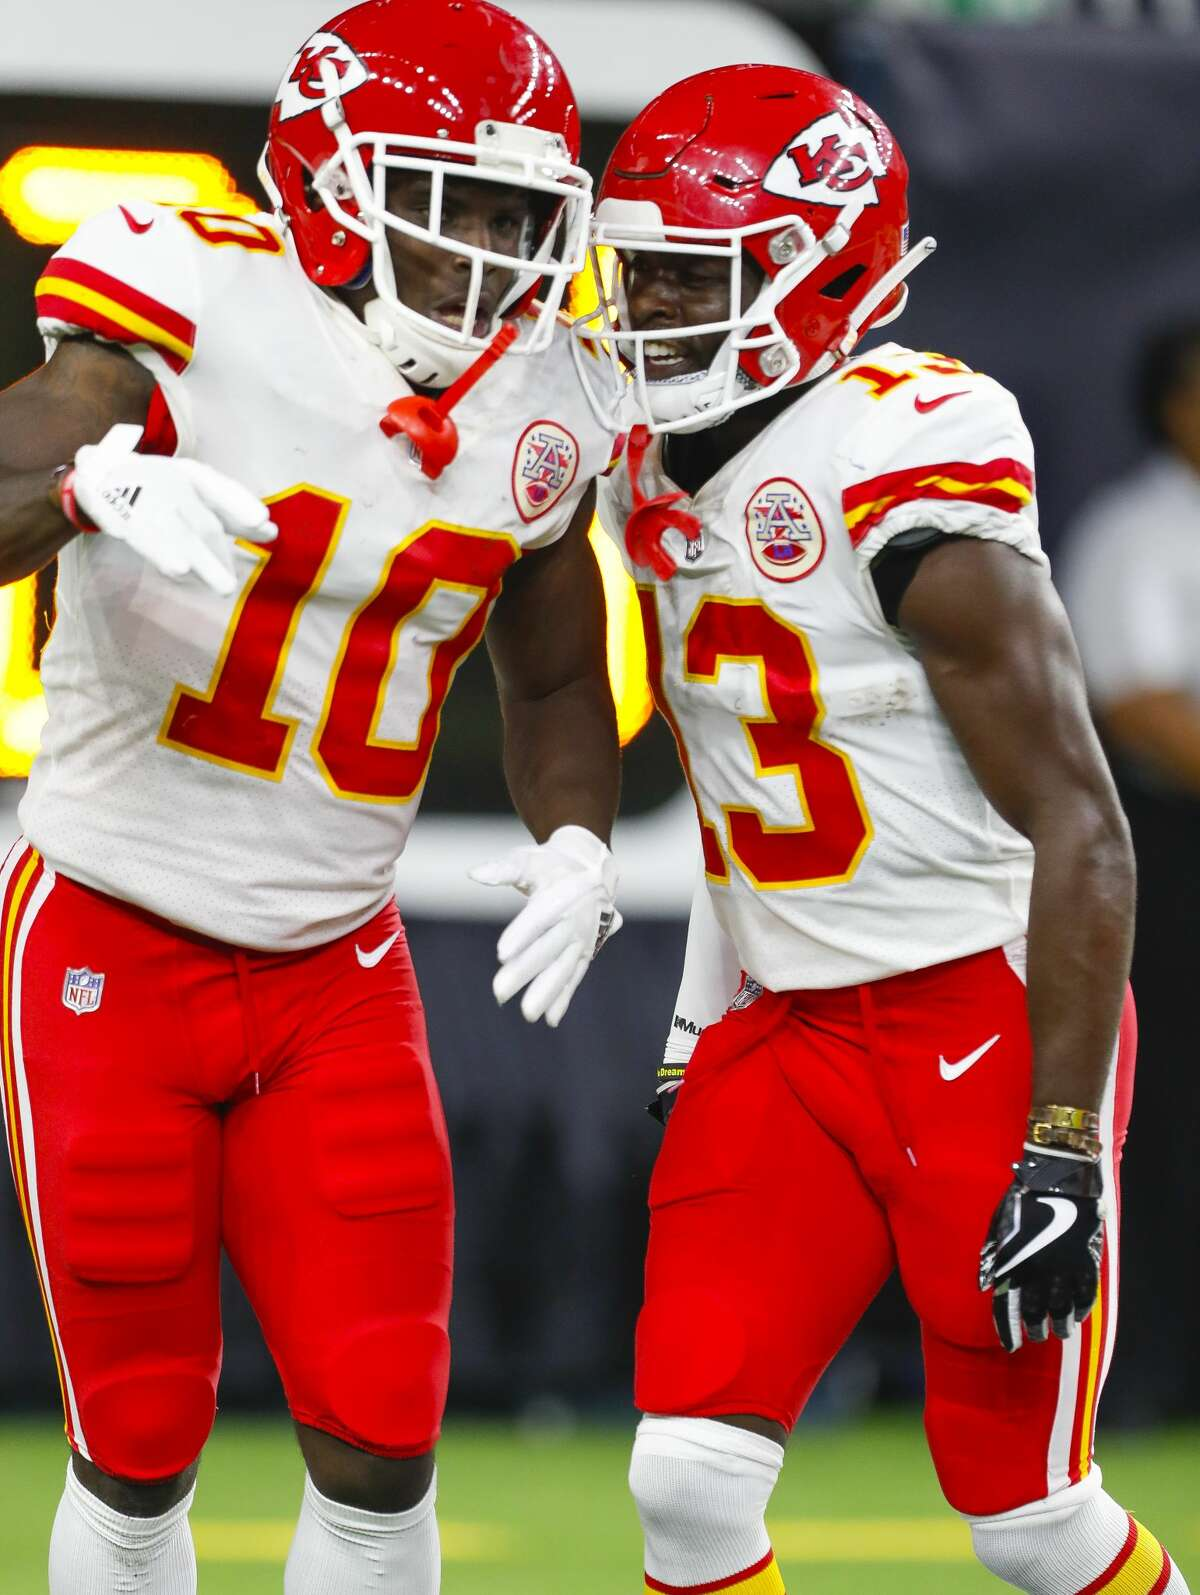 Kansas City Chiefs wide receiver Tyreek Hill (10) celebrates his 82 yard punt return for a touchdown with Kansas City Chiefs wide receiver De'Anthony Thomas (13) during the fourth quarter of an NFL football game at NRG Stadium on Sunday, Oct. 8, 2017, in Houston. ( Brett Coomer / Houston Chronicle )